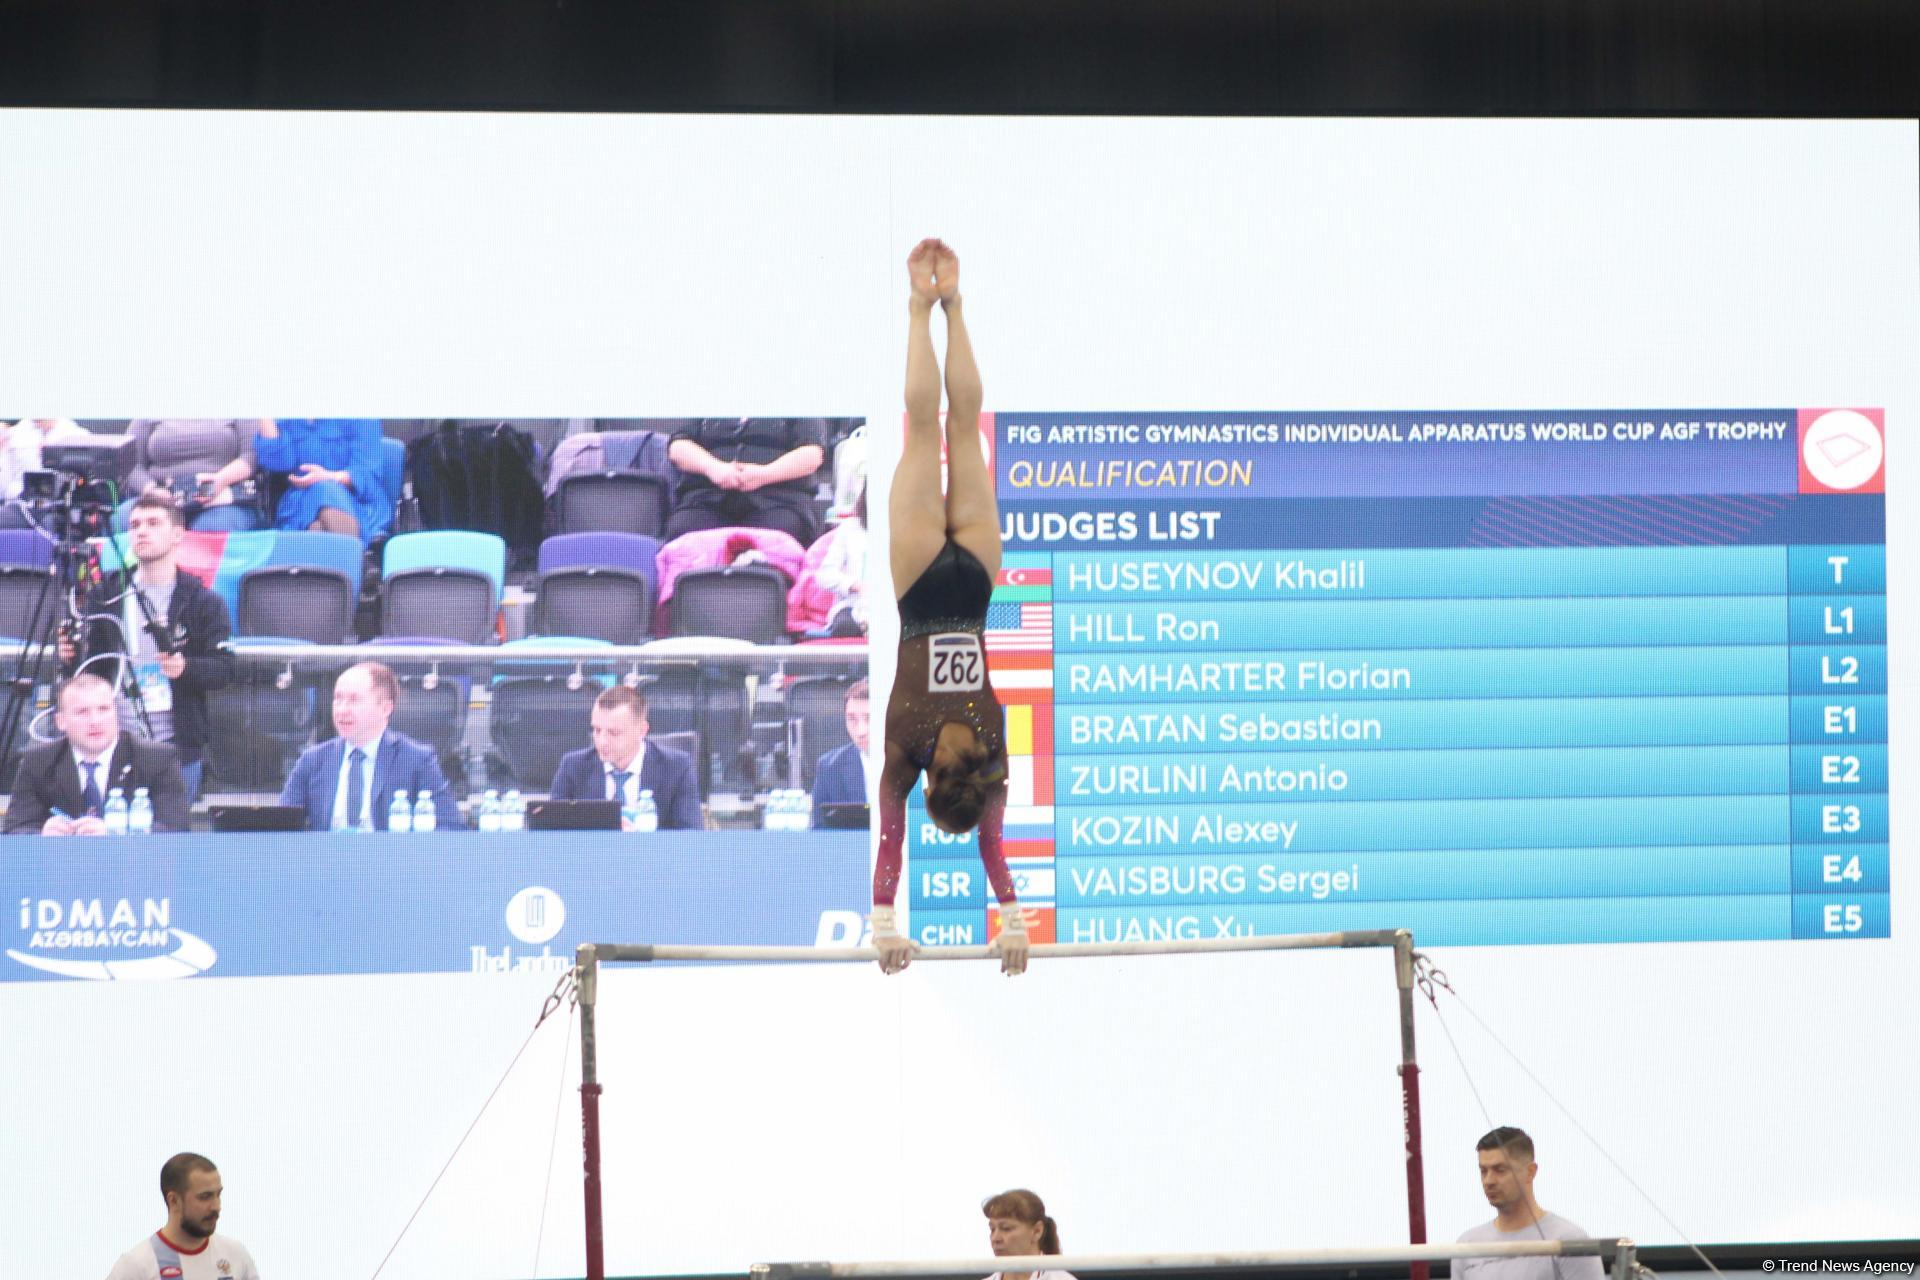 First day of FIG Artistic Gymnastics Individual Apparatus World Cup kicks off in Baku (PHOTO)